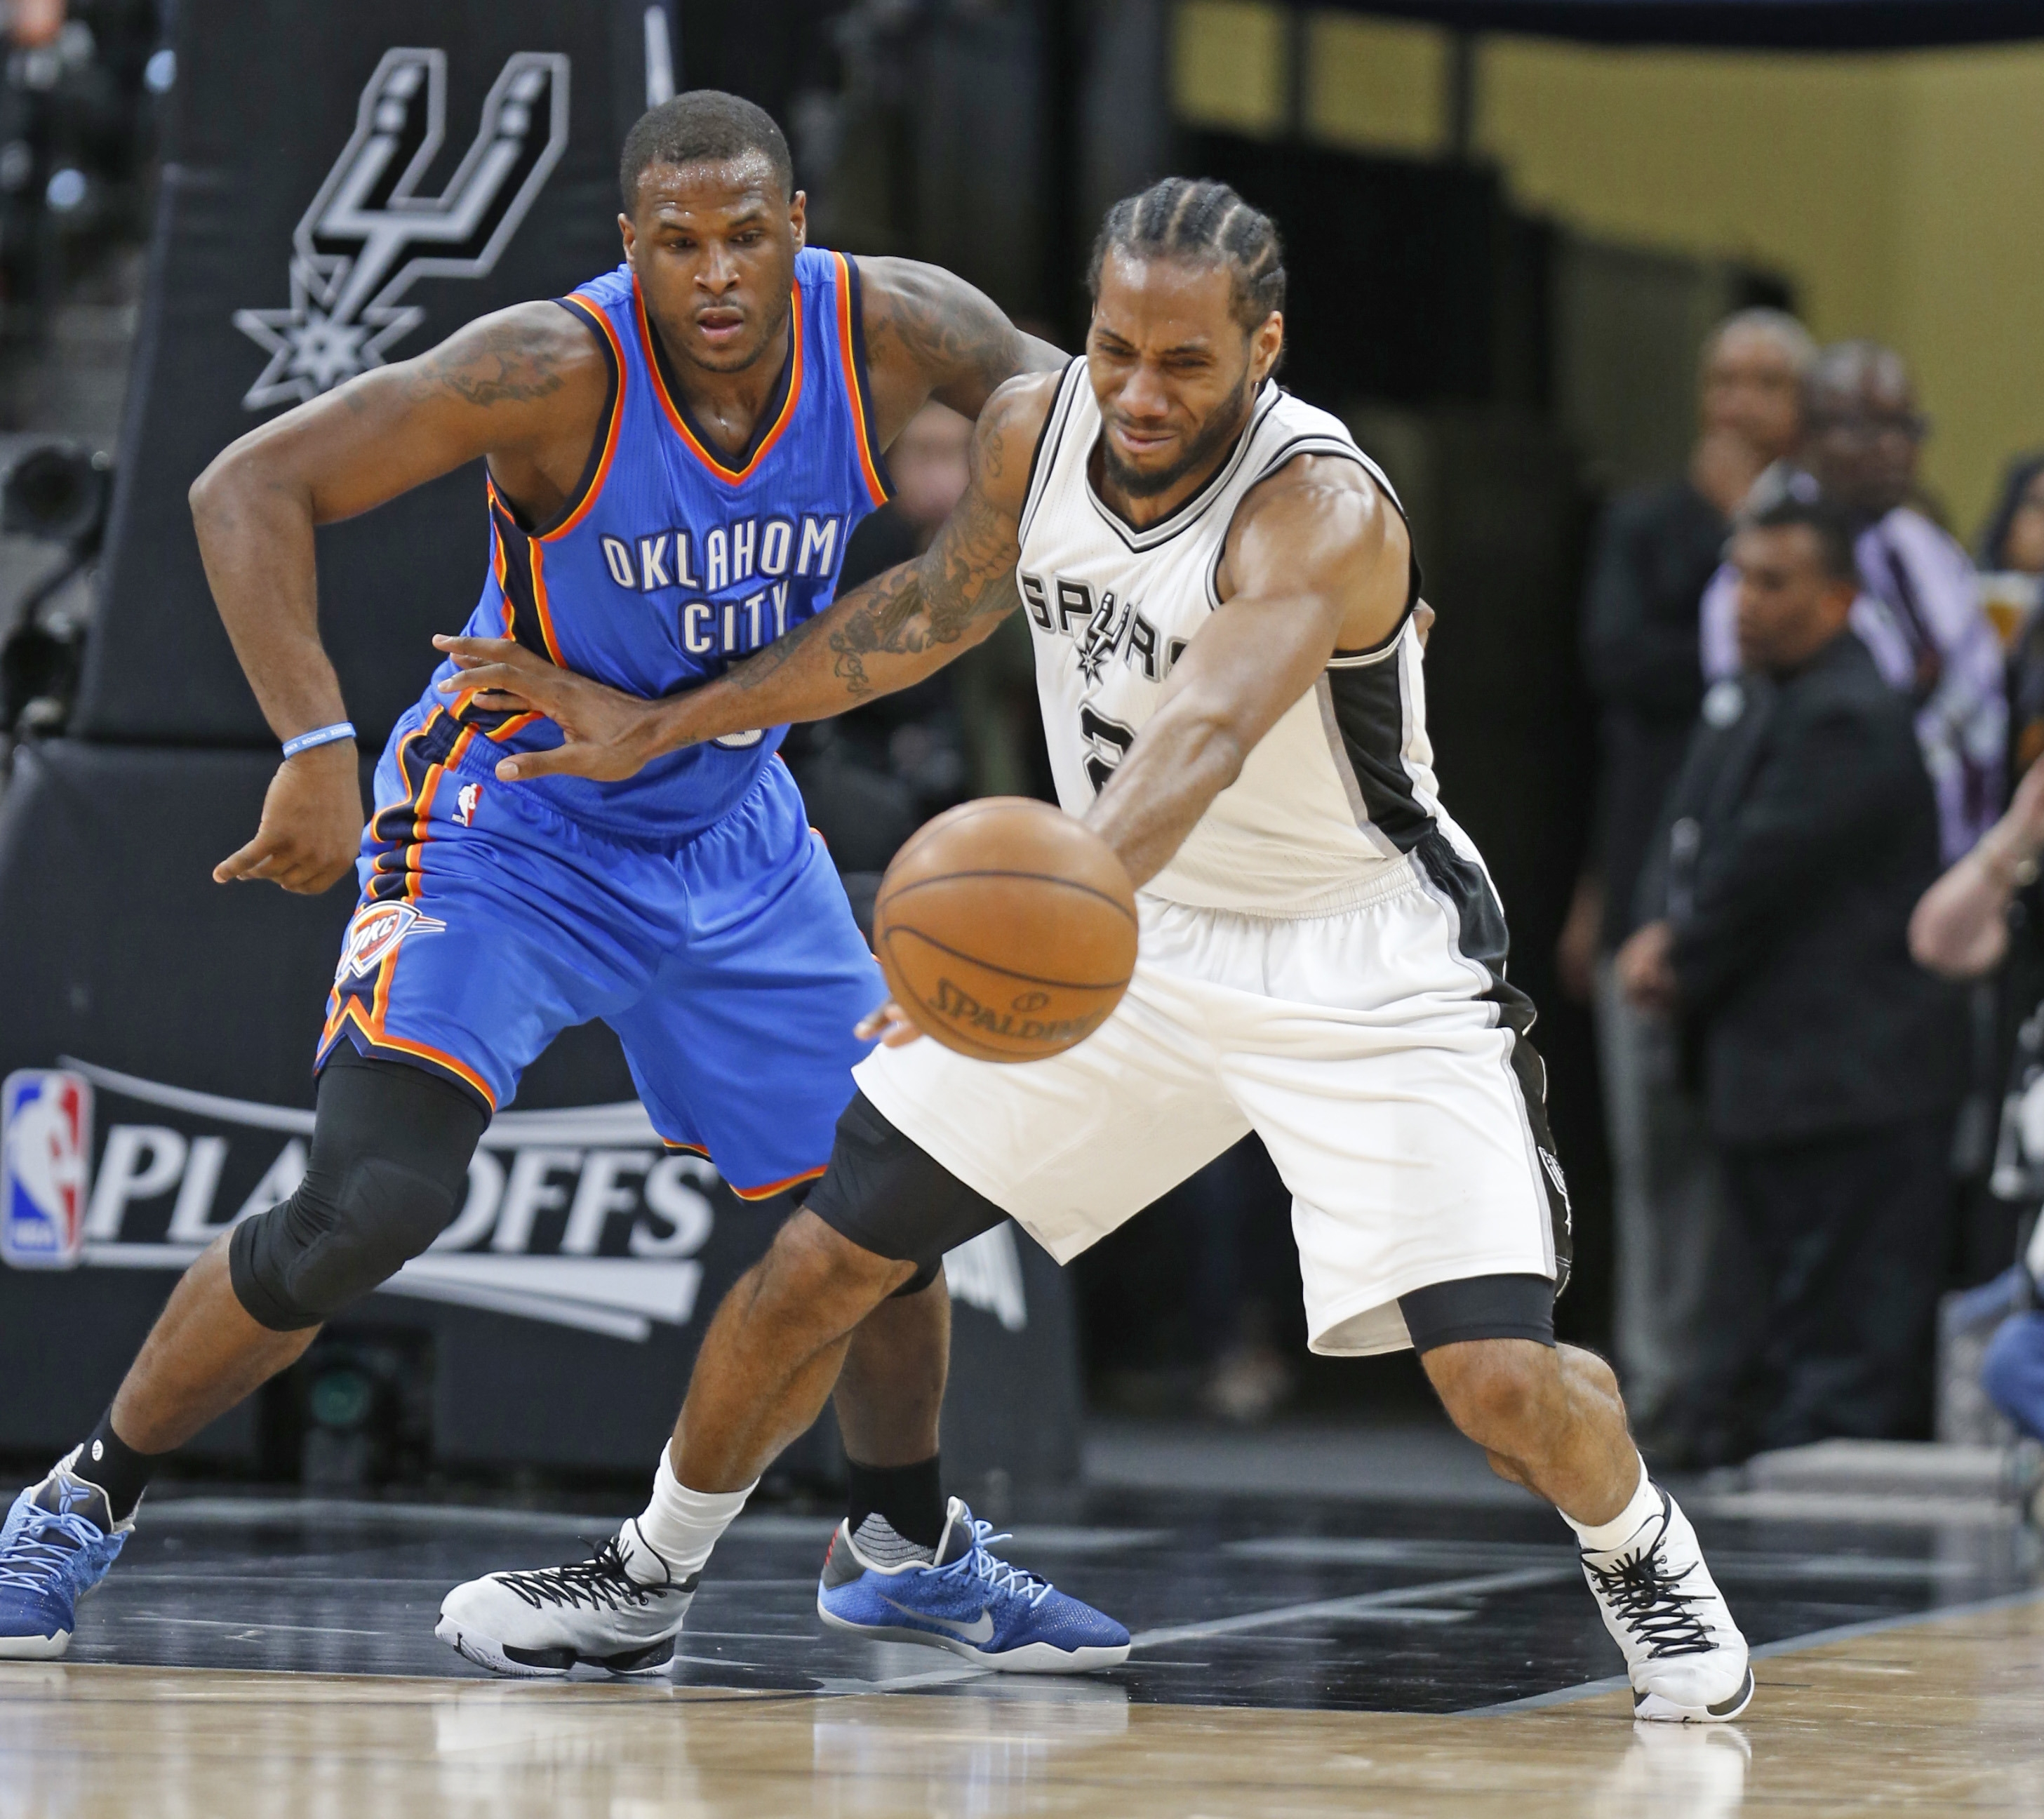 Kawhi Leonard of the San Antonio Spurs and Dion Waiters of the Oklahoma City Thunder go after the ball in Game Two of their Western Conference series Monday.